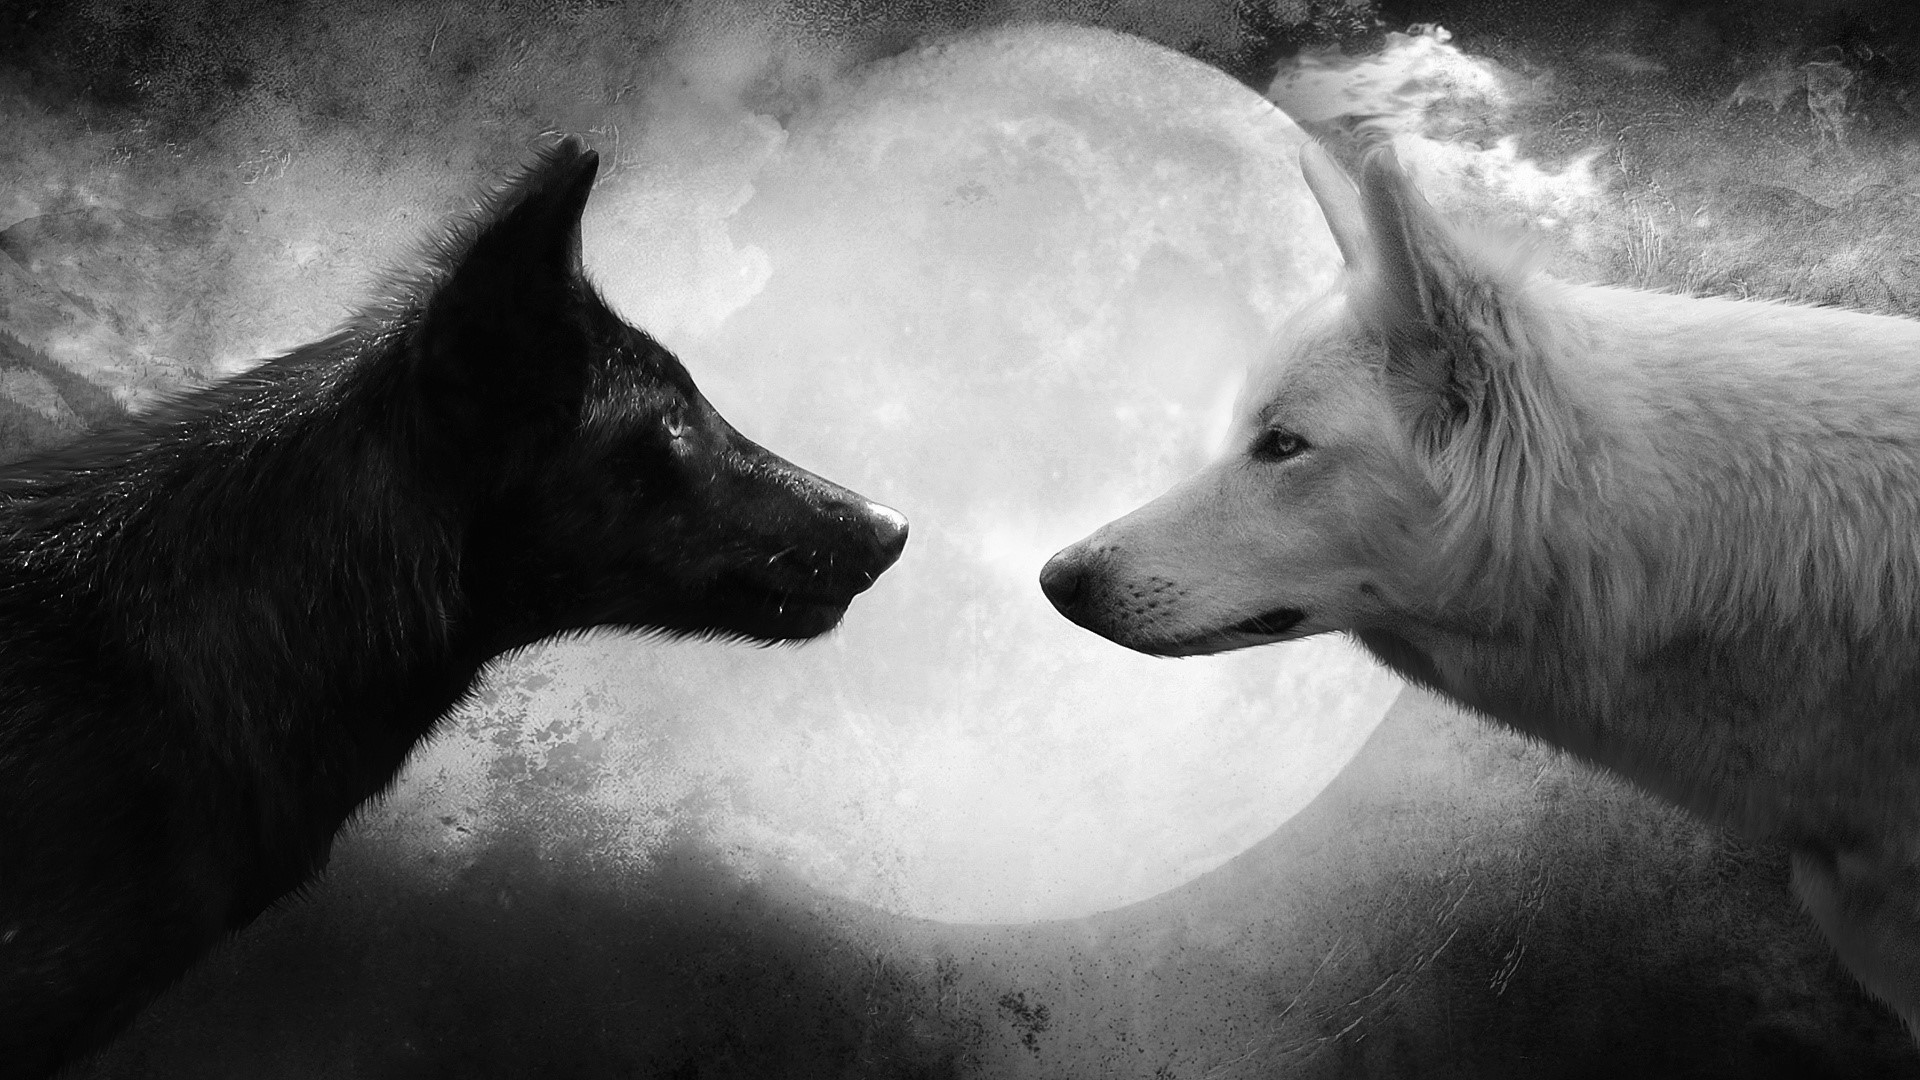 1920x1080 Abstract-art-black-and-white-wolf-wallpaper.jpg